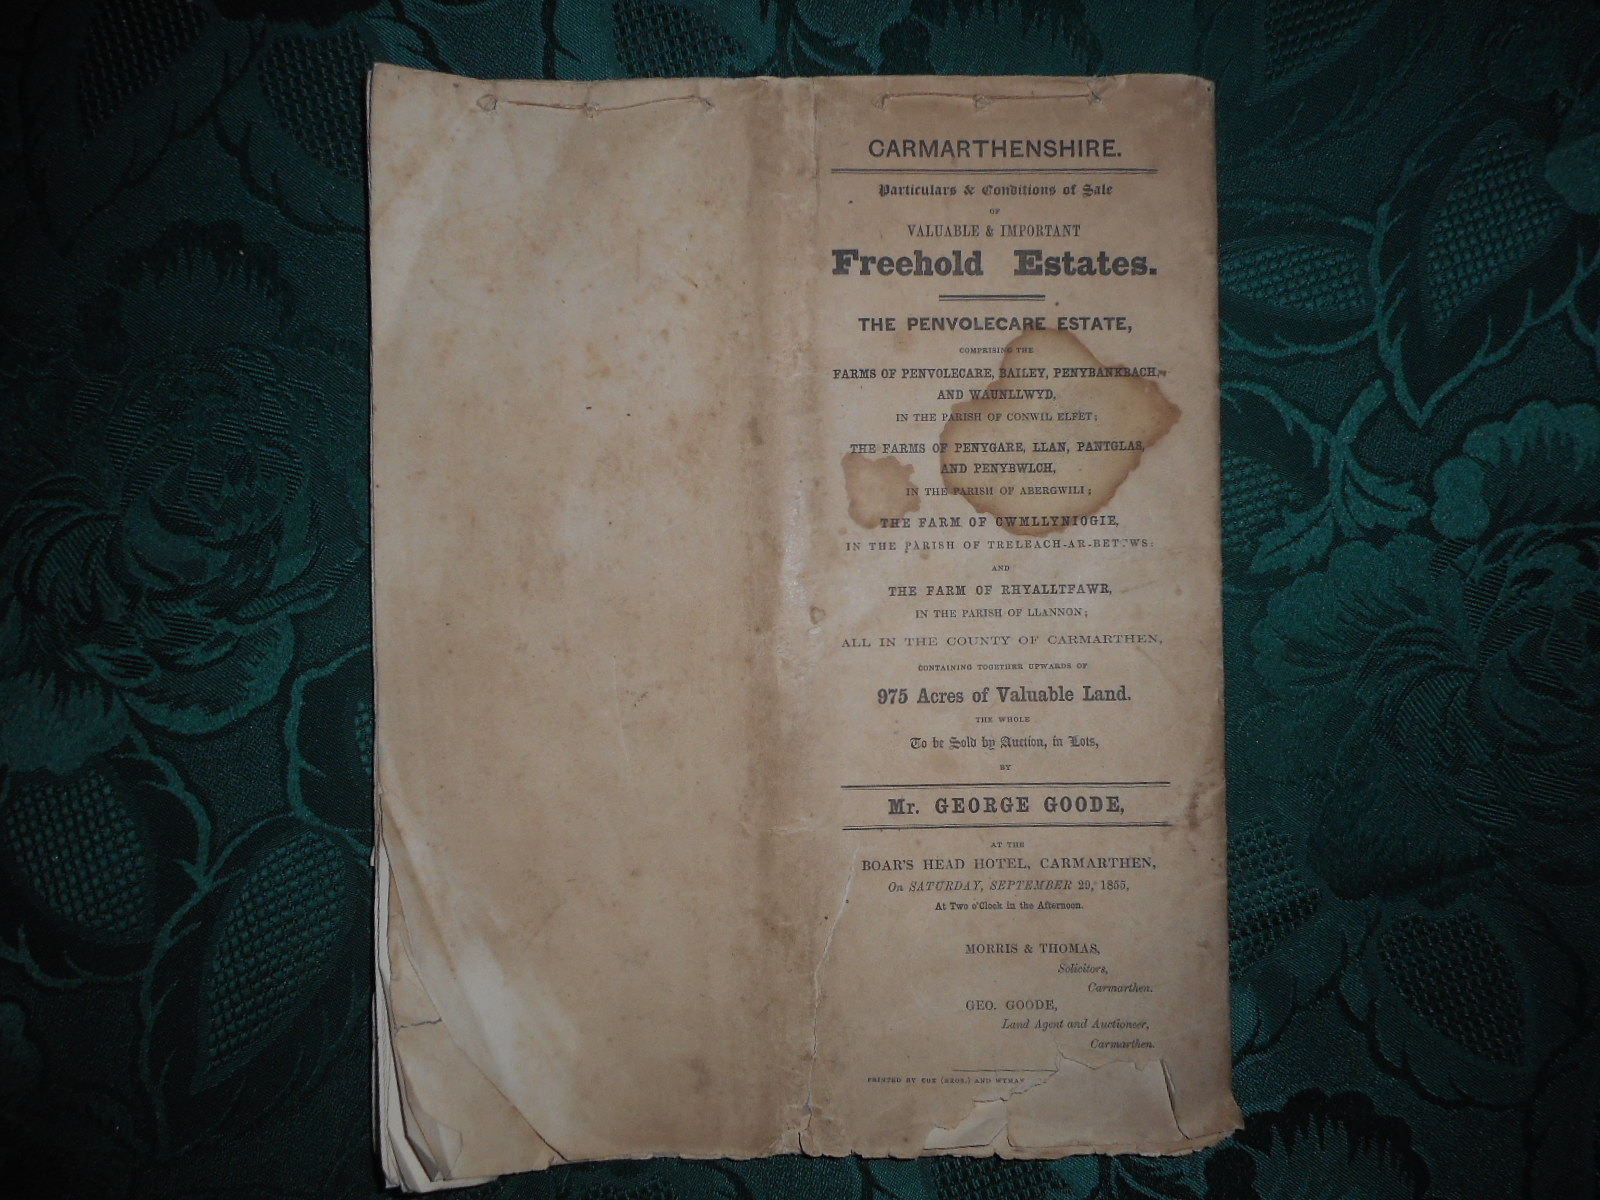 Image for Particulars and Conditions of Sale of Valuable & Important FREEHOLD ESTATES. the PENVOLECARE ESTATE Comprising the Farms of Penvolecare, Bailey, Penybankbach & Waunllwyd in the Parish of Conwil Elfet, Etc... (See Description) in the County of CARMARTHEN  (Includes Penygare, Llan, Pantglas, & Penybwlych in Abergwili. Cwmllyniogie Farm, Trelech-Ar-Bettws; & Rhyalltfawr Farm, Llannon, CARMARTHEN)